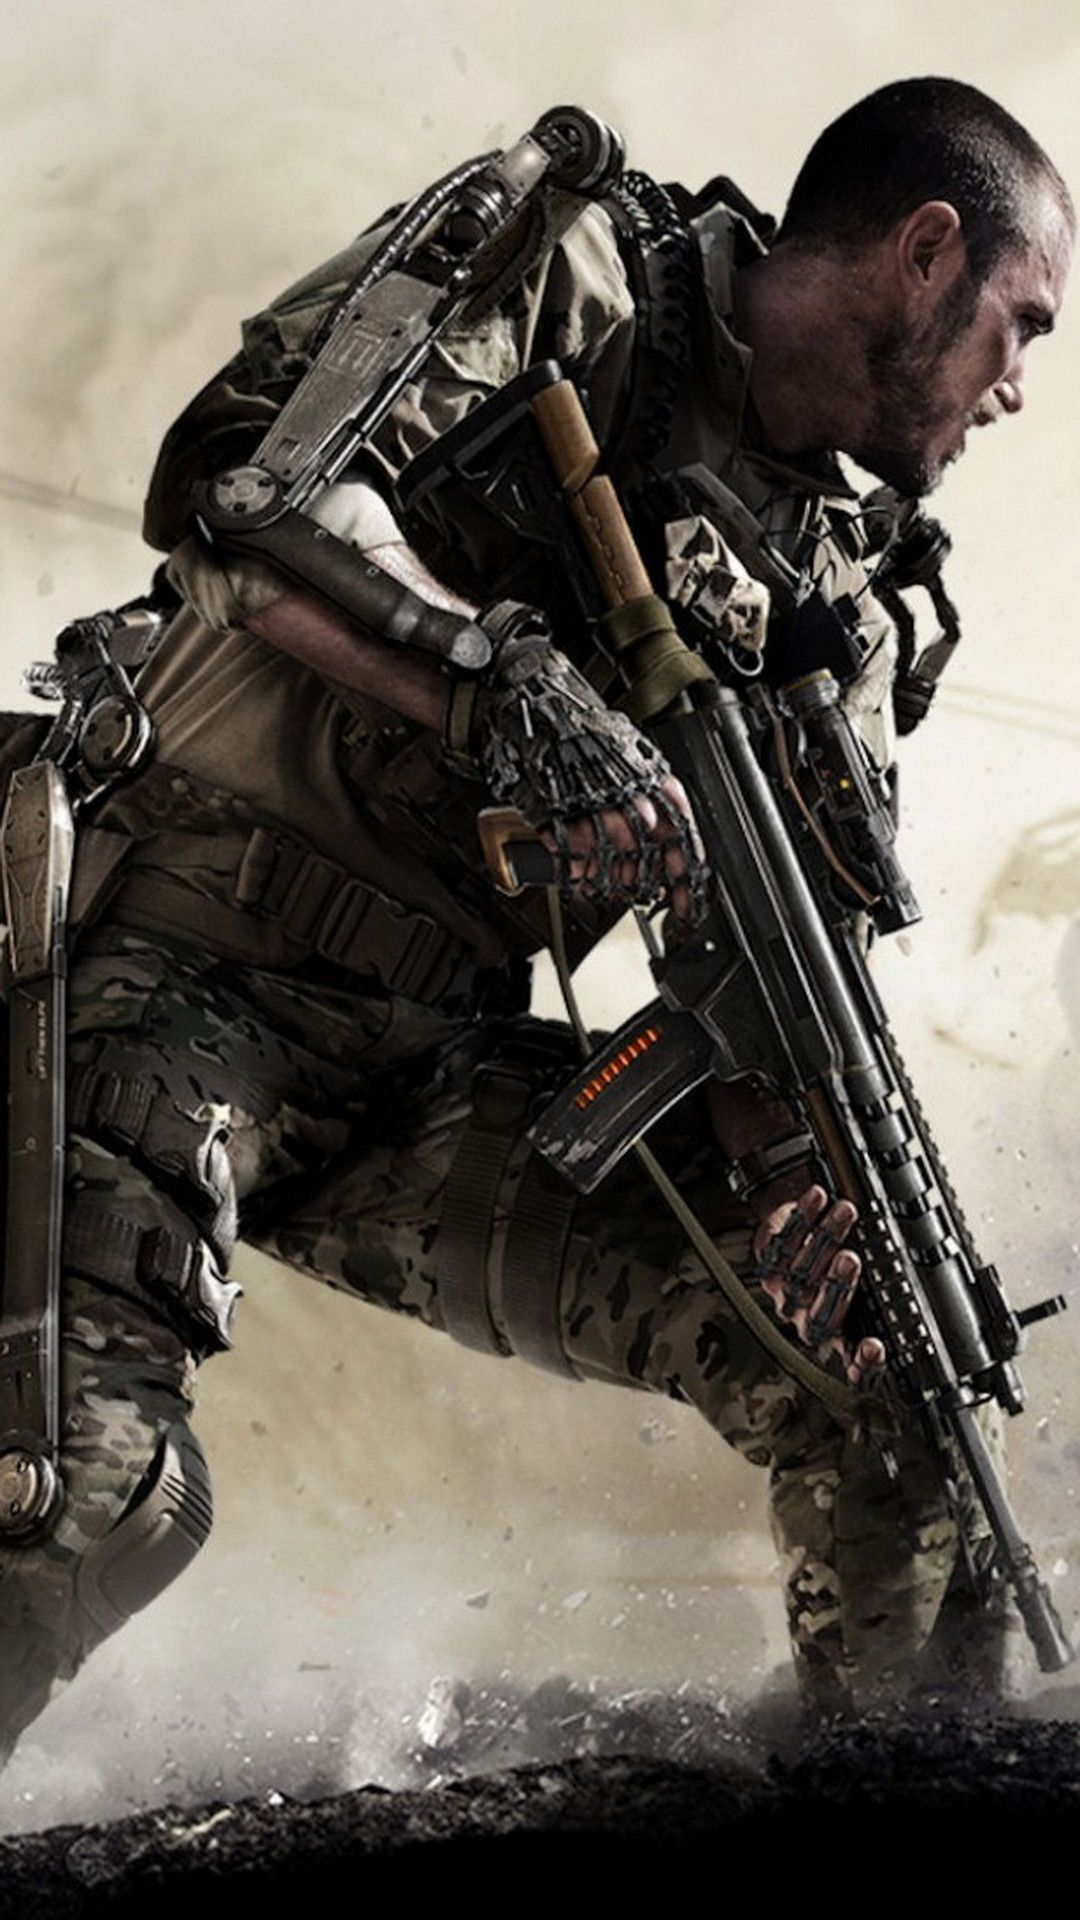 Call Of Duty Wallpaper Android In 2020 Call Of Duty Advanced Warfare Call Of Duty Black